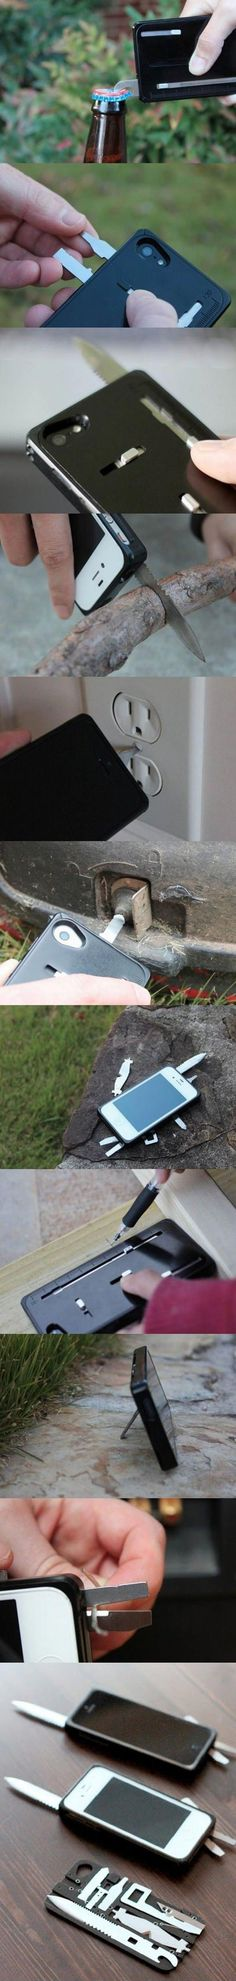 Swiss Army Knife iPhone Case!!! 